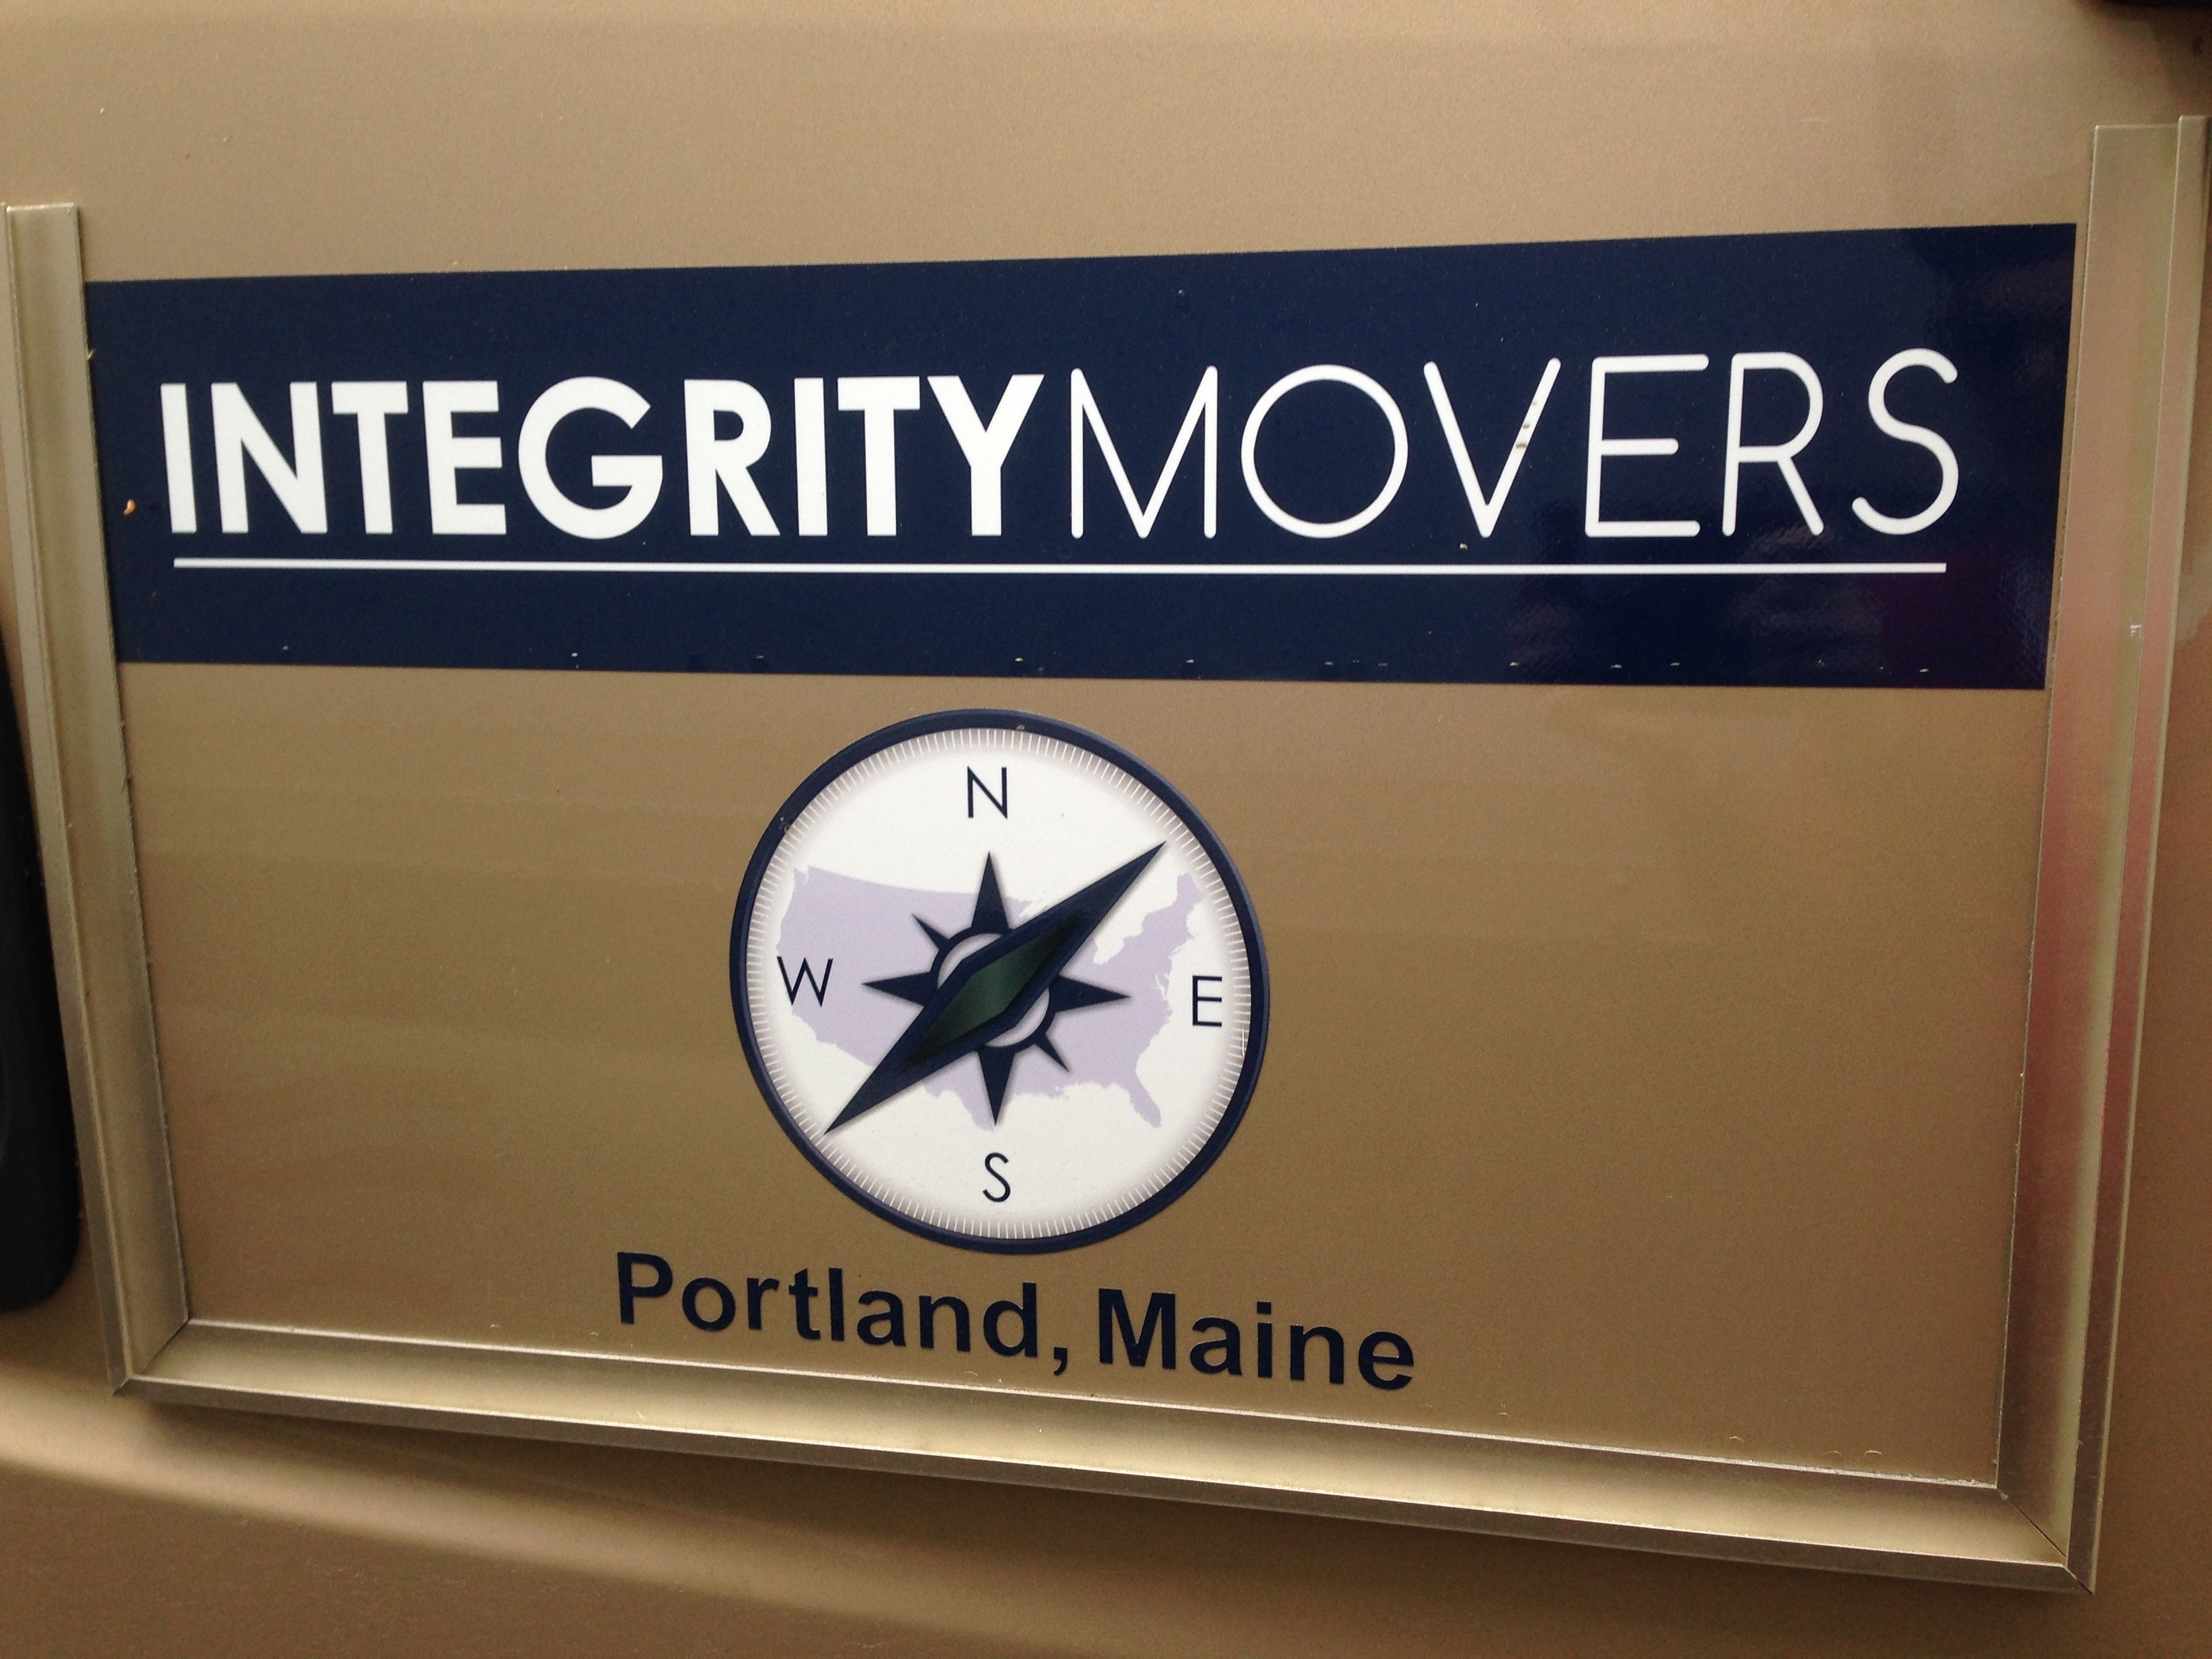 Integrity Movers